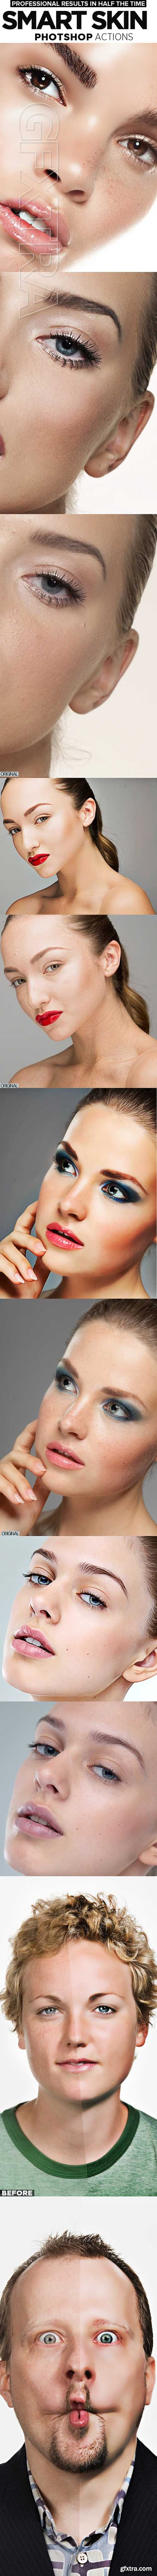 GraphicRiver - Skin Retouching Actions 21912734